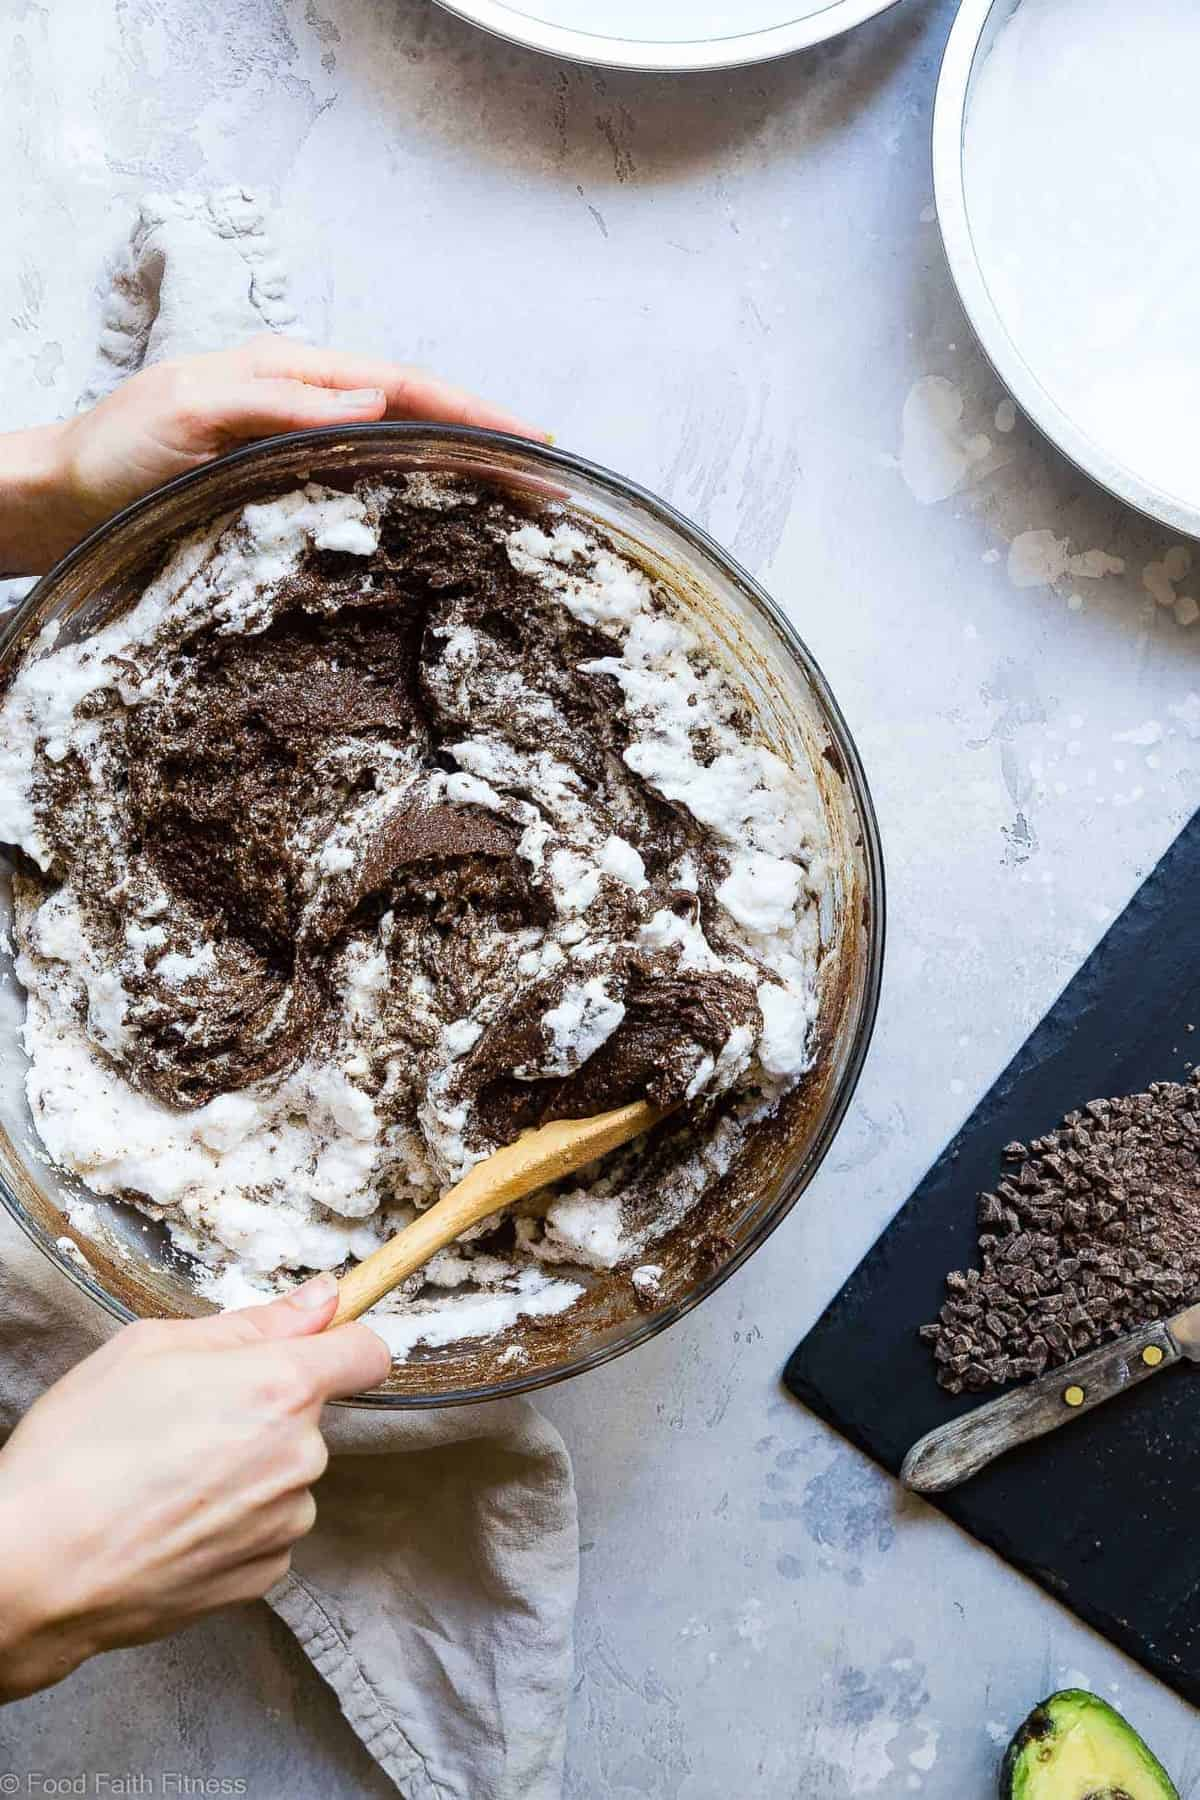 The Best Paleo Chocolate Avocado Cake with Coconut Flour - This dairy and gluten free Chocolate avocado cake recipe is SO fluffy and moist you'll never believe it's butter/oil free and made with avocado! The BEST healthy chocolate cake you will ever have! | #Foodfaithfitness | #Paleo #Grainfree #Dairyfree #Healthy #cake